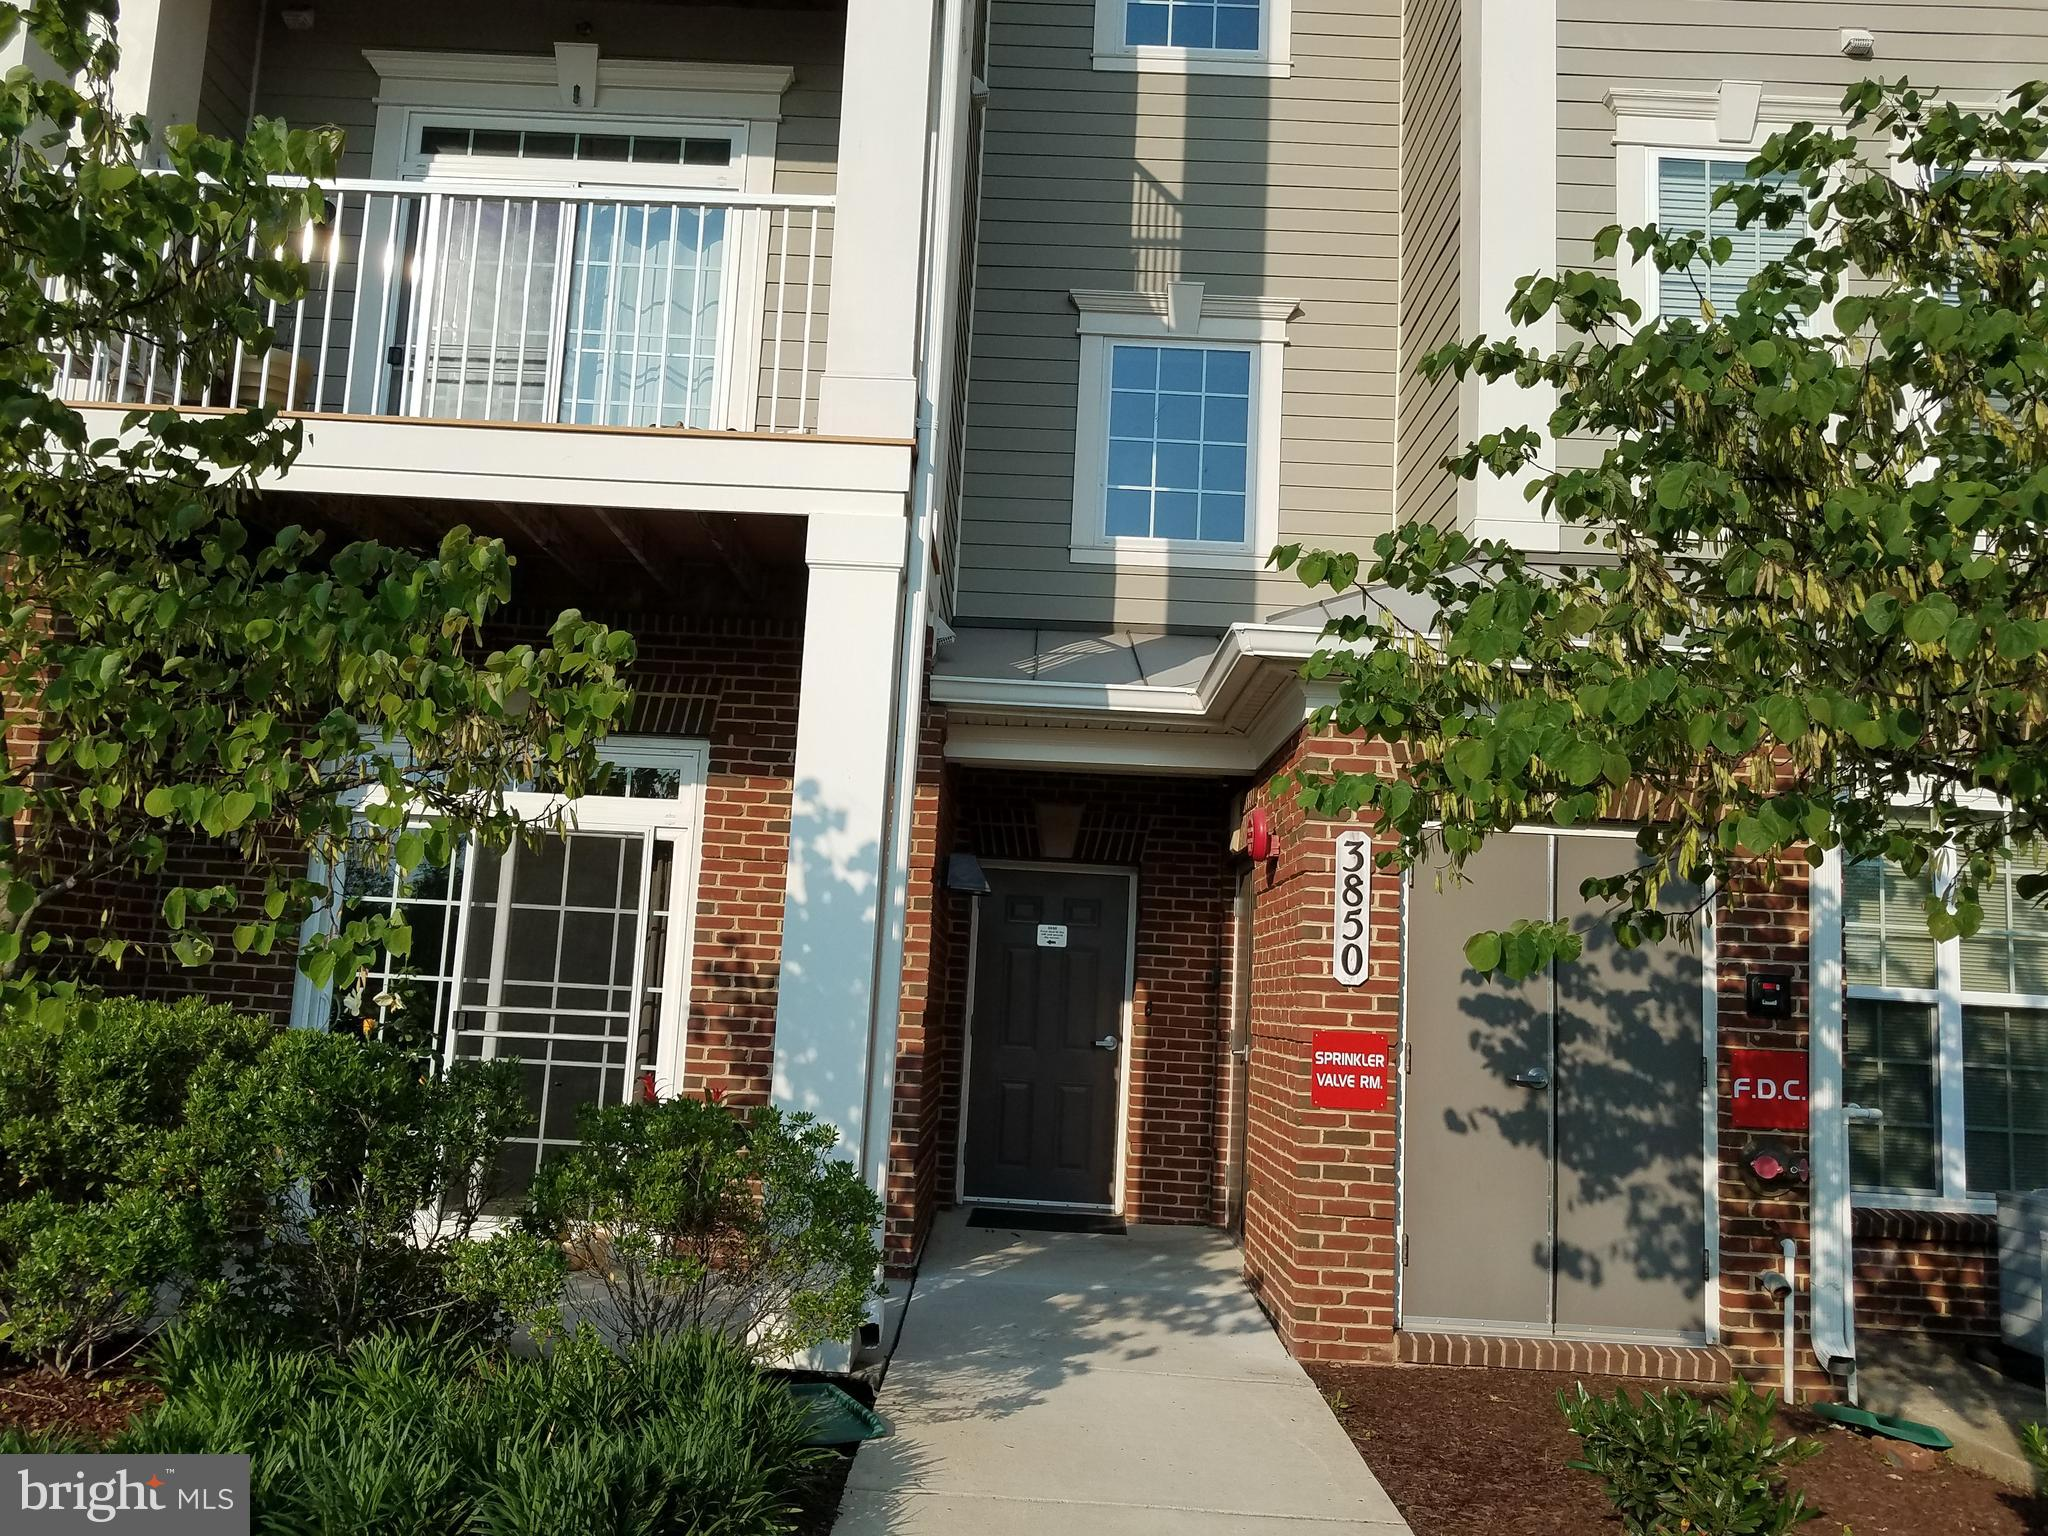 LOCATION, LOCATION, LOCATION. EASY ACCESS TO I200 AND MINUTES AWAY FROM GLENMONT METRO STATION, CLOS